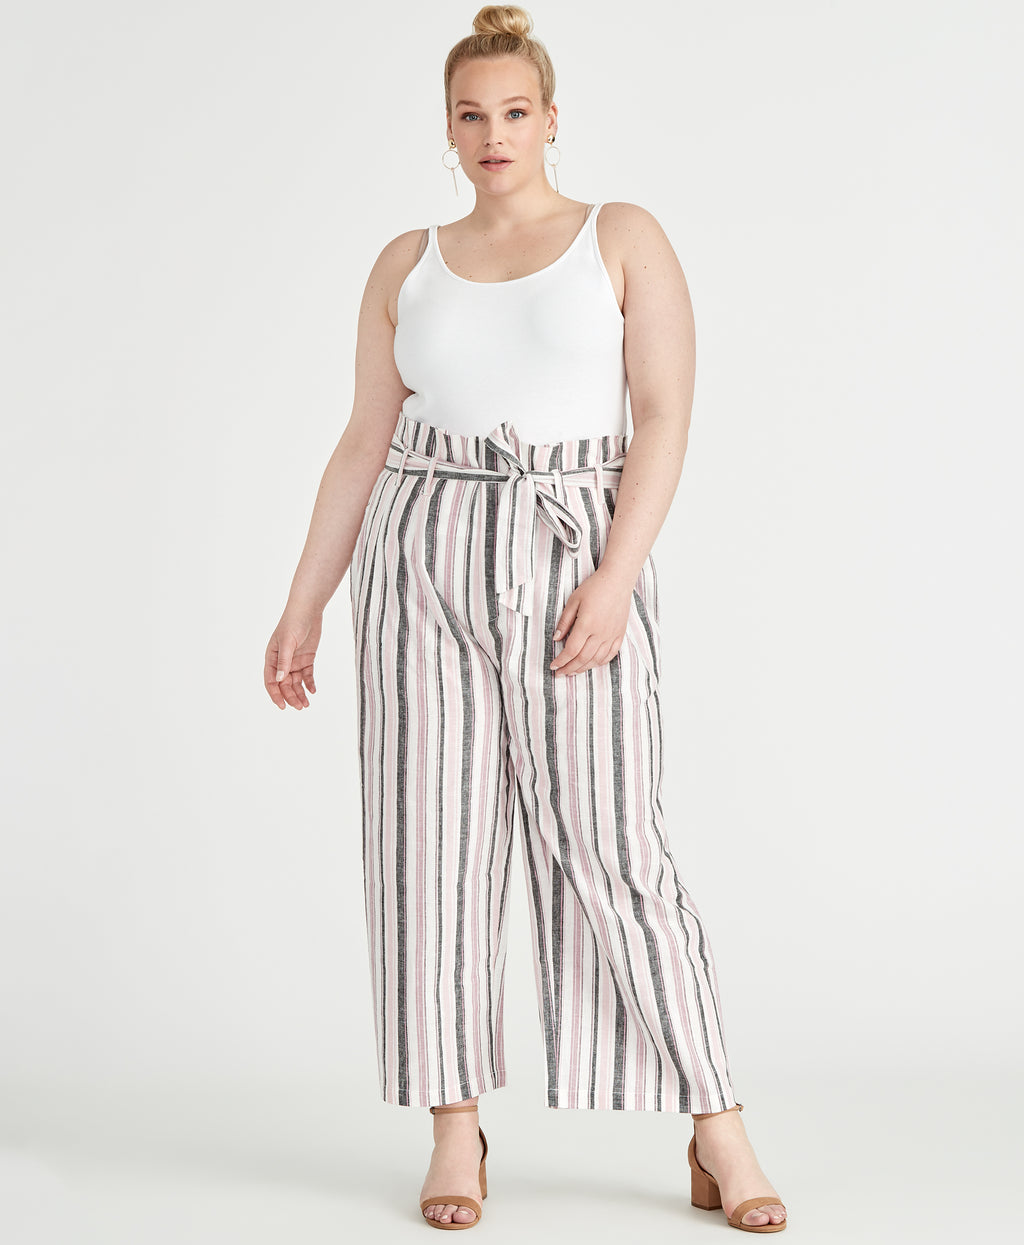 NANCY PAPERBAG PANT | NANCY PAPERBAG PANT